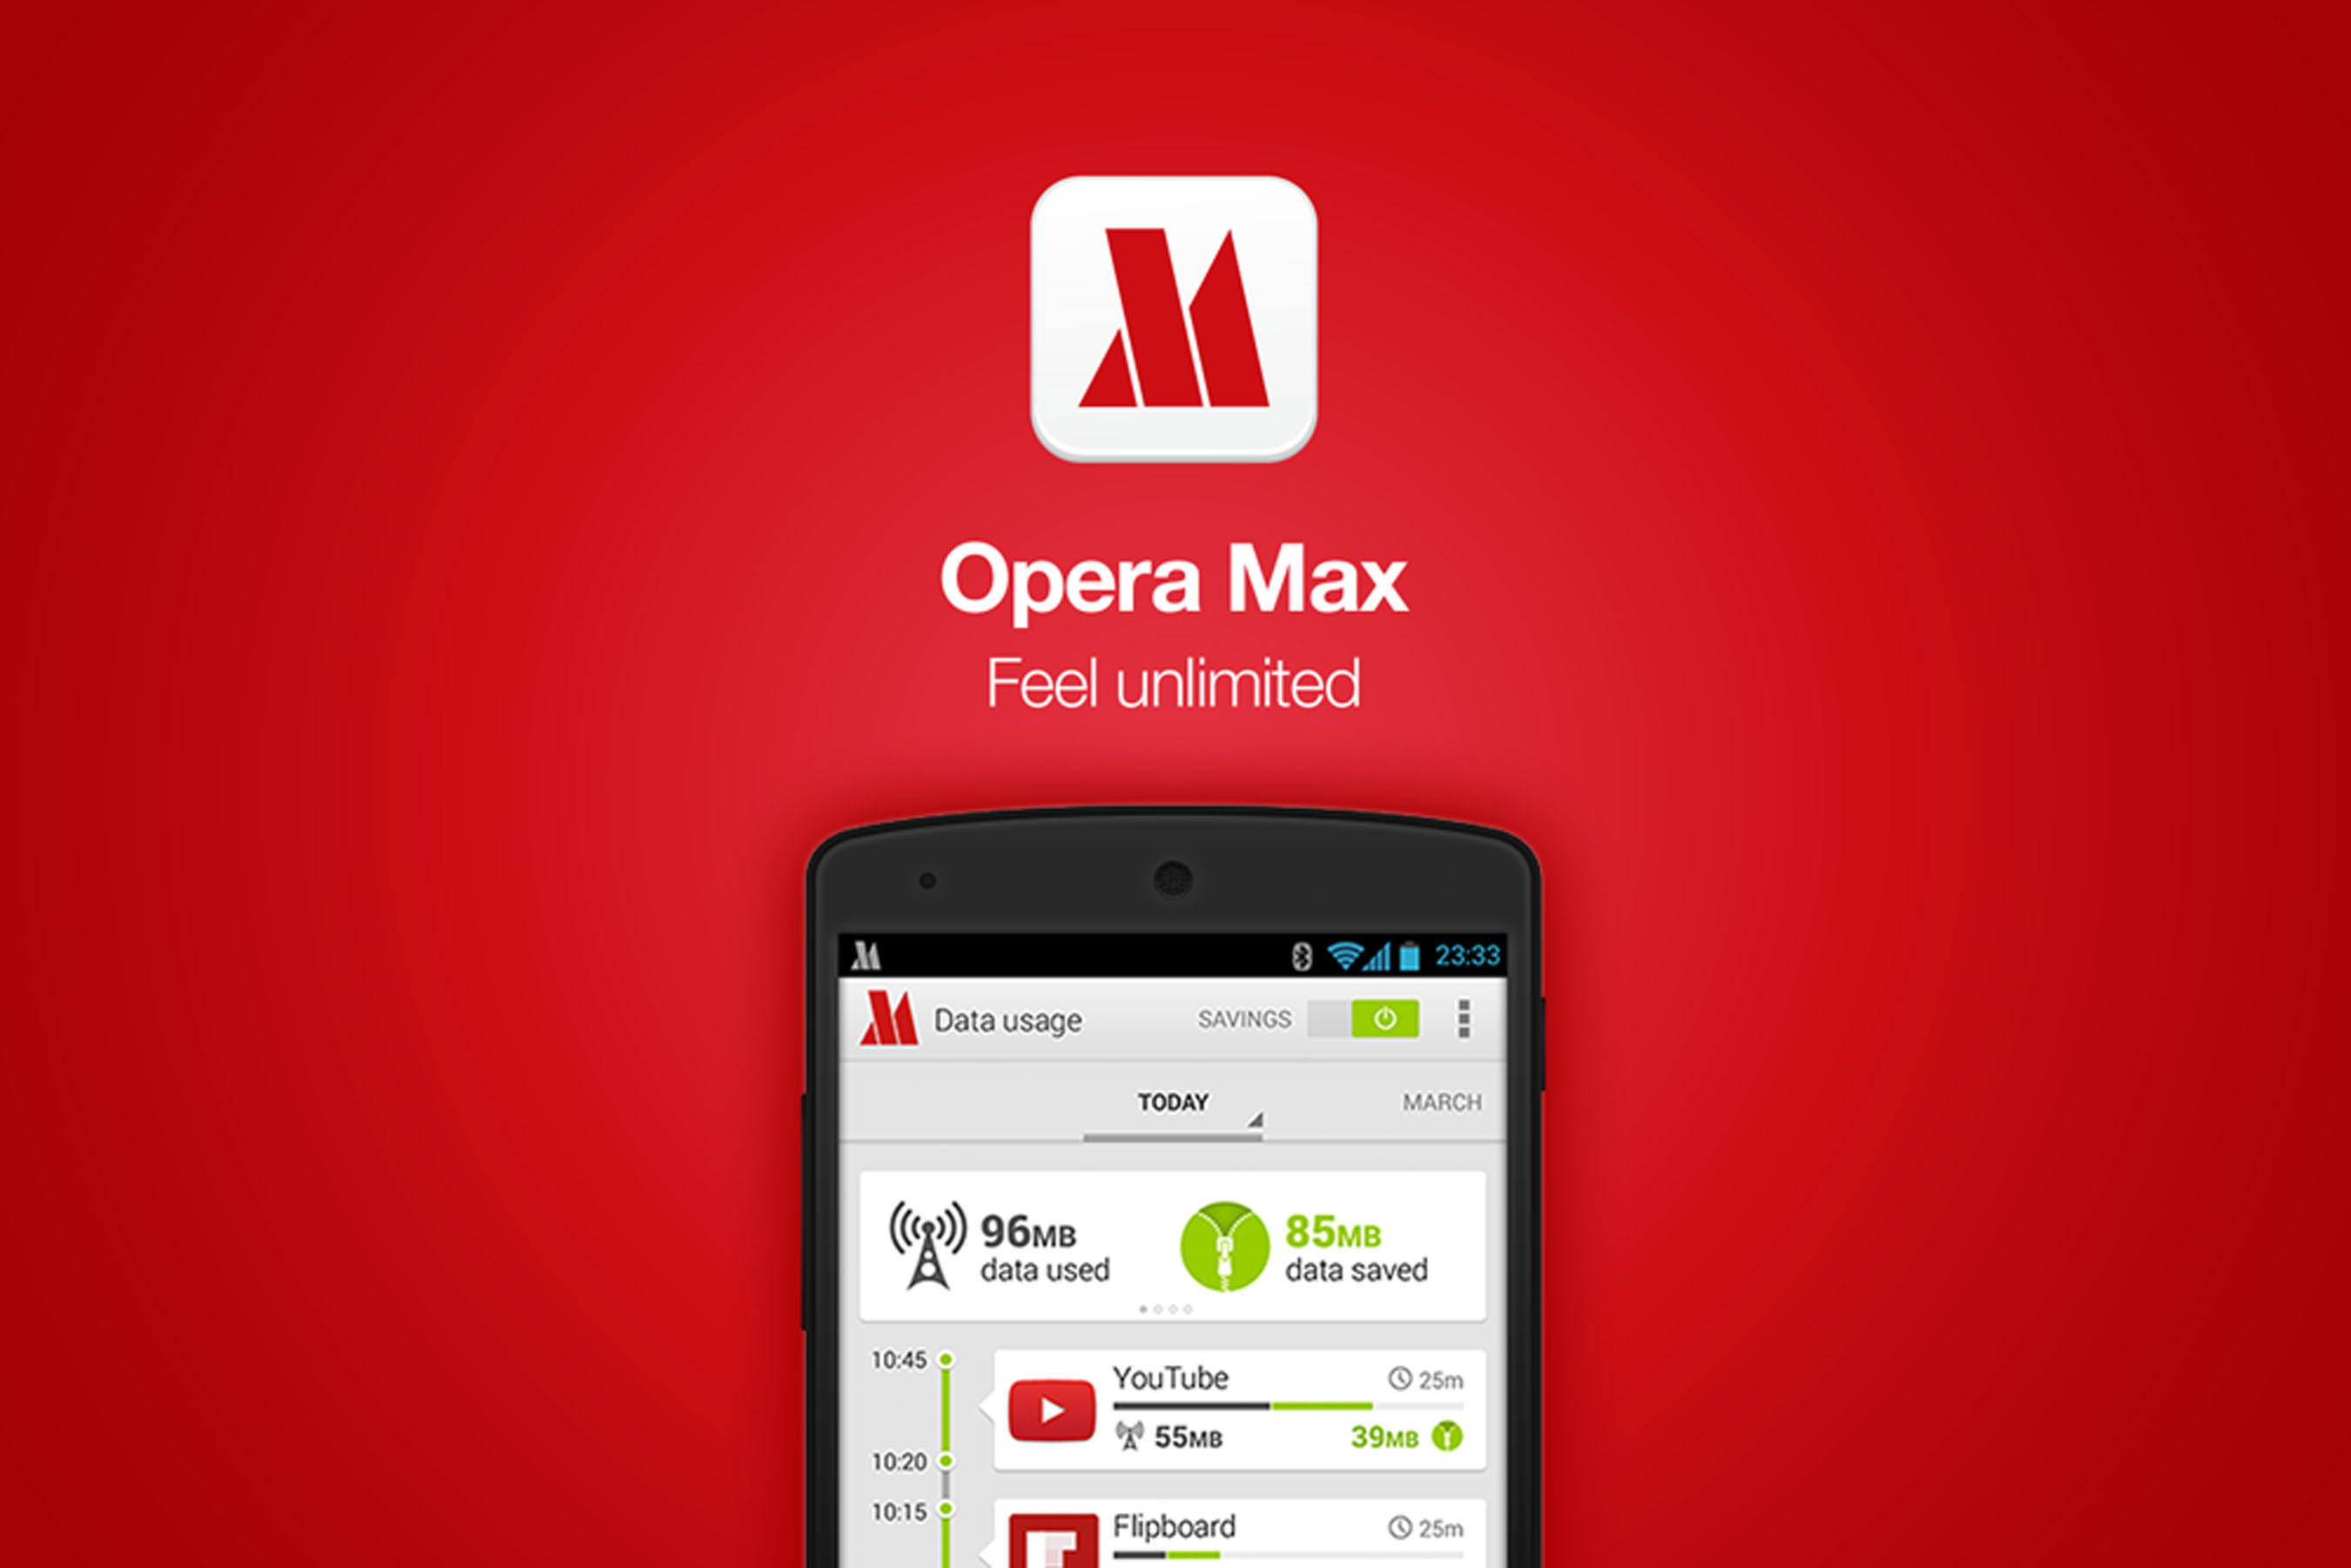 Opera Max: a free and easy-to-use data savings app that compresses data across applications on your mobile device - including video, text and images - so you can get the most out your data plan and more control over your data usage. (PRNewsFoto/Opera Software) (PRNewsFoto/OPERA SOFTWARE)